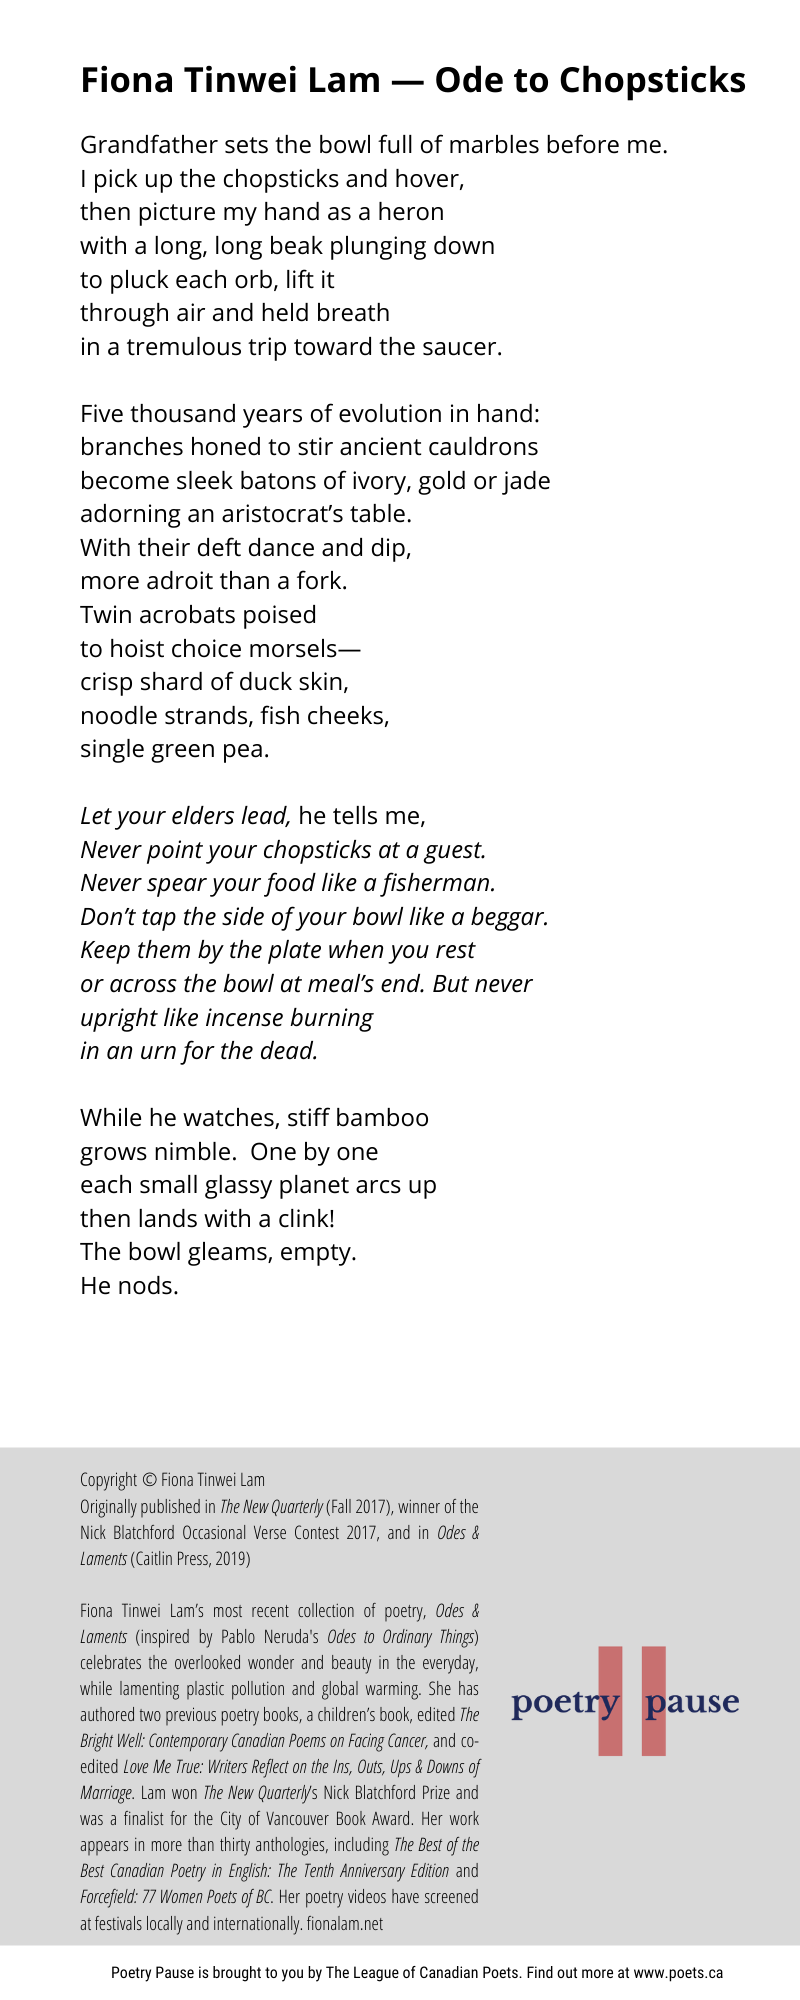 Poet name: Fiona Tinwei Lam Poem title: Ode to chopsticks Poem: Grandfather sets the bowl full of marbles before me. I pick up the chopsticks and hover, then picture my hand as a heron with a long, long beak plunging down to pluck each orb, lift it through air and held breath in a tremulous trip toward the saucer. Five thousand years of evolution in hand: branches honed to stir ancient cauldrons become sleek batons of ivory, gold or jade adorning an aristocrat's table. With their deft dance and dip, more adroit than a fork. Twin acrobats poised to hoist choice morsels— crisp shard of duck skin, noodle strands, fish cheeks, single green pea. Let your elders lead, he tells me, Never point your chopsticks at a guest. Never spear your food like a fisherman. Don't tap the side of your bowl like a beggar. Keep them by the plate when you rest or across the bowl at meal's end. But never upright like incense burning in an urn for the dead. While he watches, stiff bamboo grows nimble. One by one each small glassy planet arcs up then lands with a clink! The bowl gleams, empty. He nods. End of poem. Credits: Copyright © Fiona Tinwei Lam Originally published in The New Quarterly (Fall 2017), winner of the Nick Blatchford Occasional Verse Contest 2017, and in Odes & Laments (Caitlin Press, 2019) Fiona Tinwei Lam's most recent collection of poetry, Odes & Laments (inspired by Pablo Neruda's Odes to Ordinary Things) celebrates the overlooked wonder and beauty in the everyday, while lamenting plastic pollution and global warming. She has authored two previous poetry books, a children's book, edited The Bright Well: Contemporary Canadian Poems on Facing Cancer, and co-edited Love Me True: Writers Reflect on the Ins, Outs, Ups & Downs of Marriage. Lam won The New Quarterly's Nick Blatchford Prize and was a finalist for the City of Vancouver Book Award. Her work appears in more than thirty anthologies, including The Best of the Best Canadian Poetry in English: The Tenth Anniversary Edi